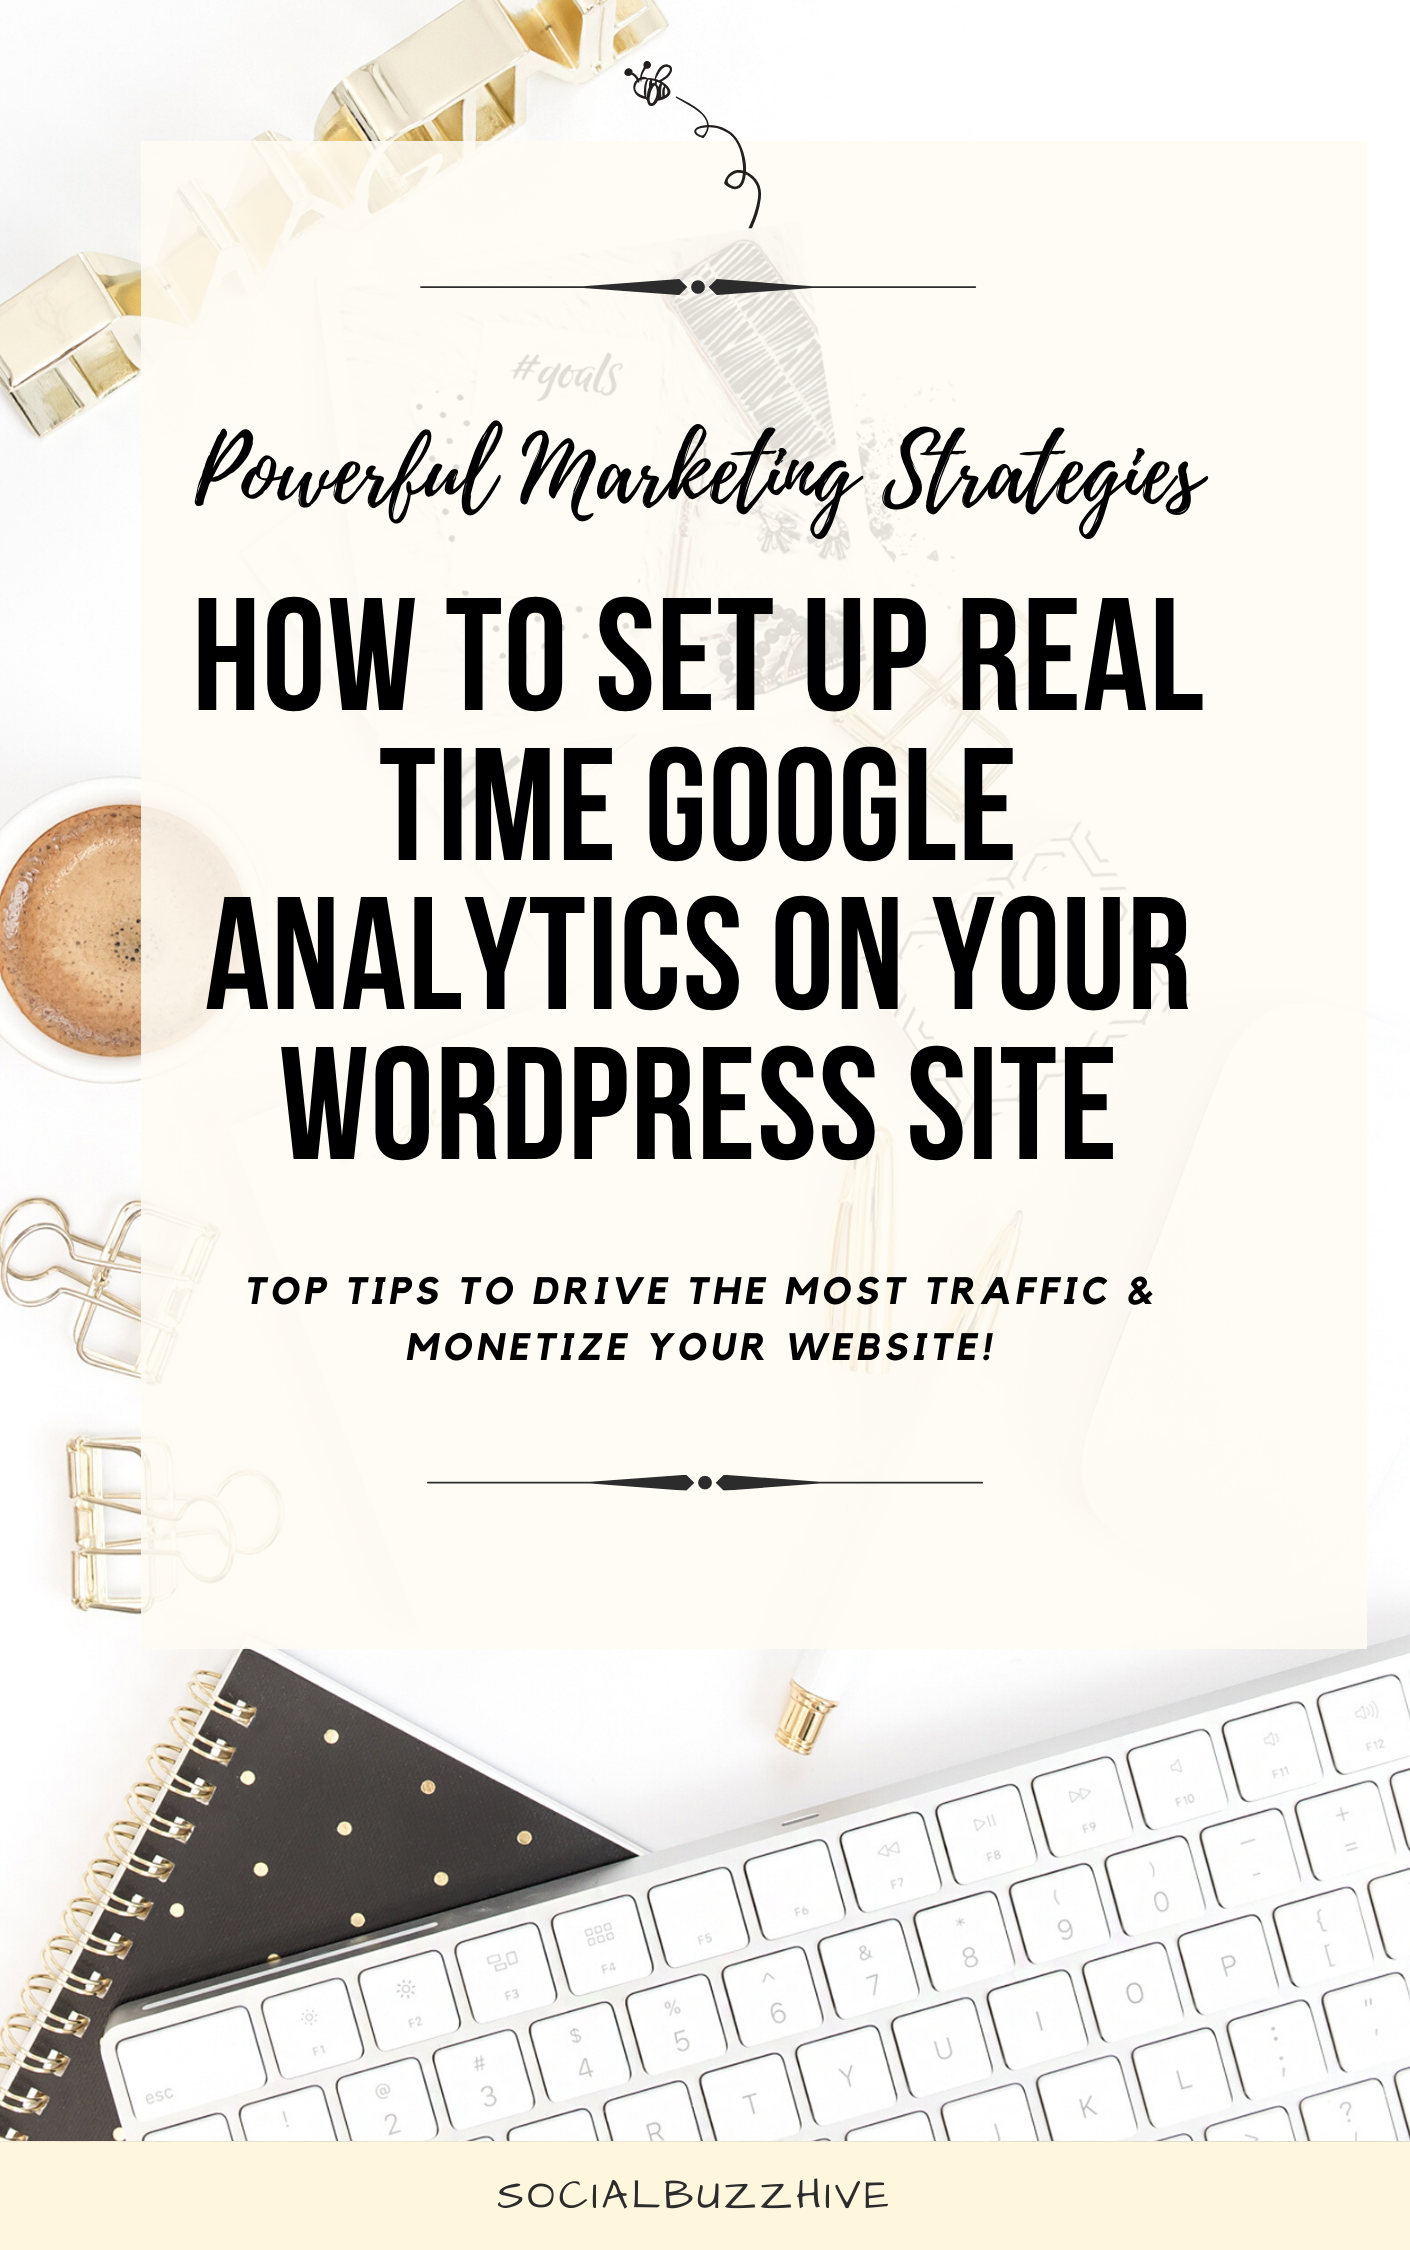 how to set up real time google analytics on your wordpress site